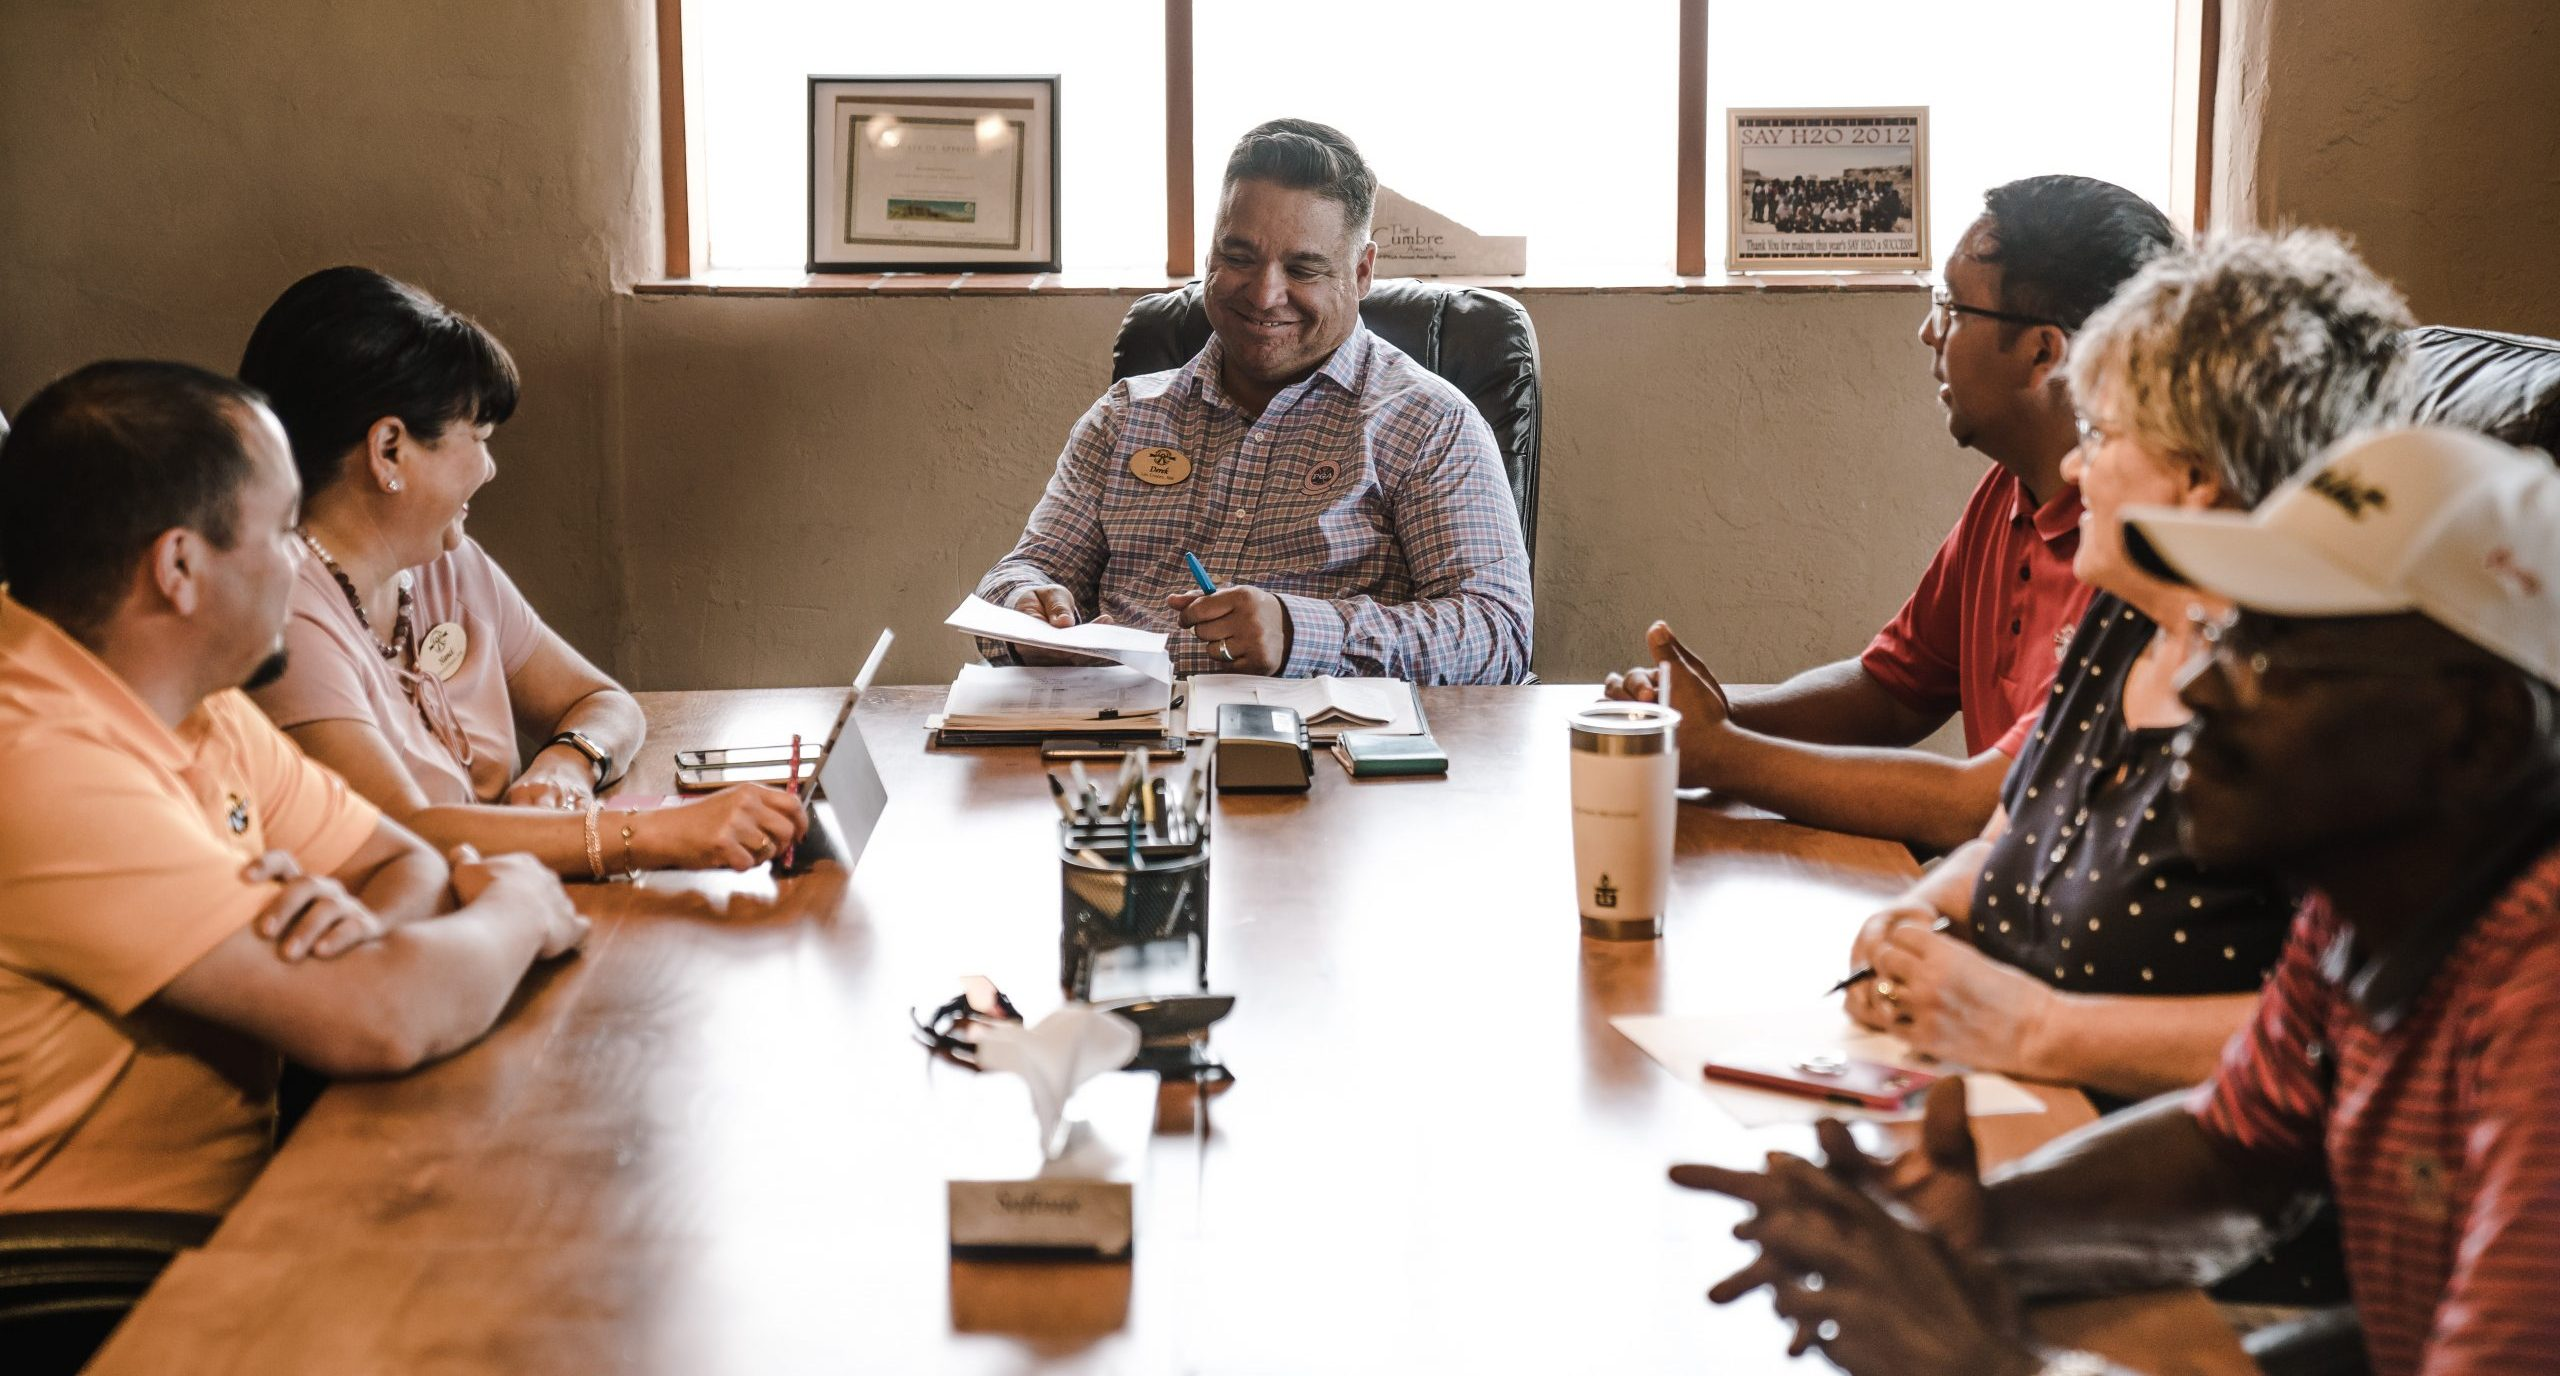 A group of men and women of various ages and ethnicities sit around a meeting table.